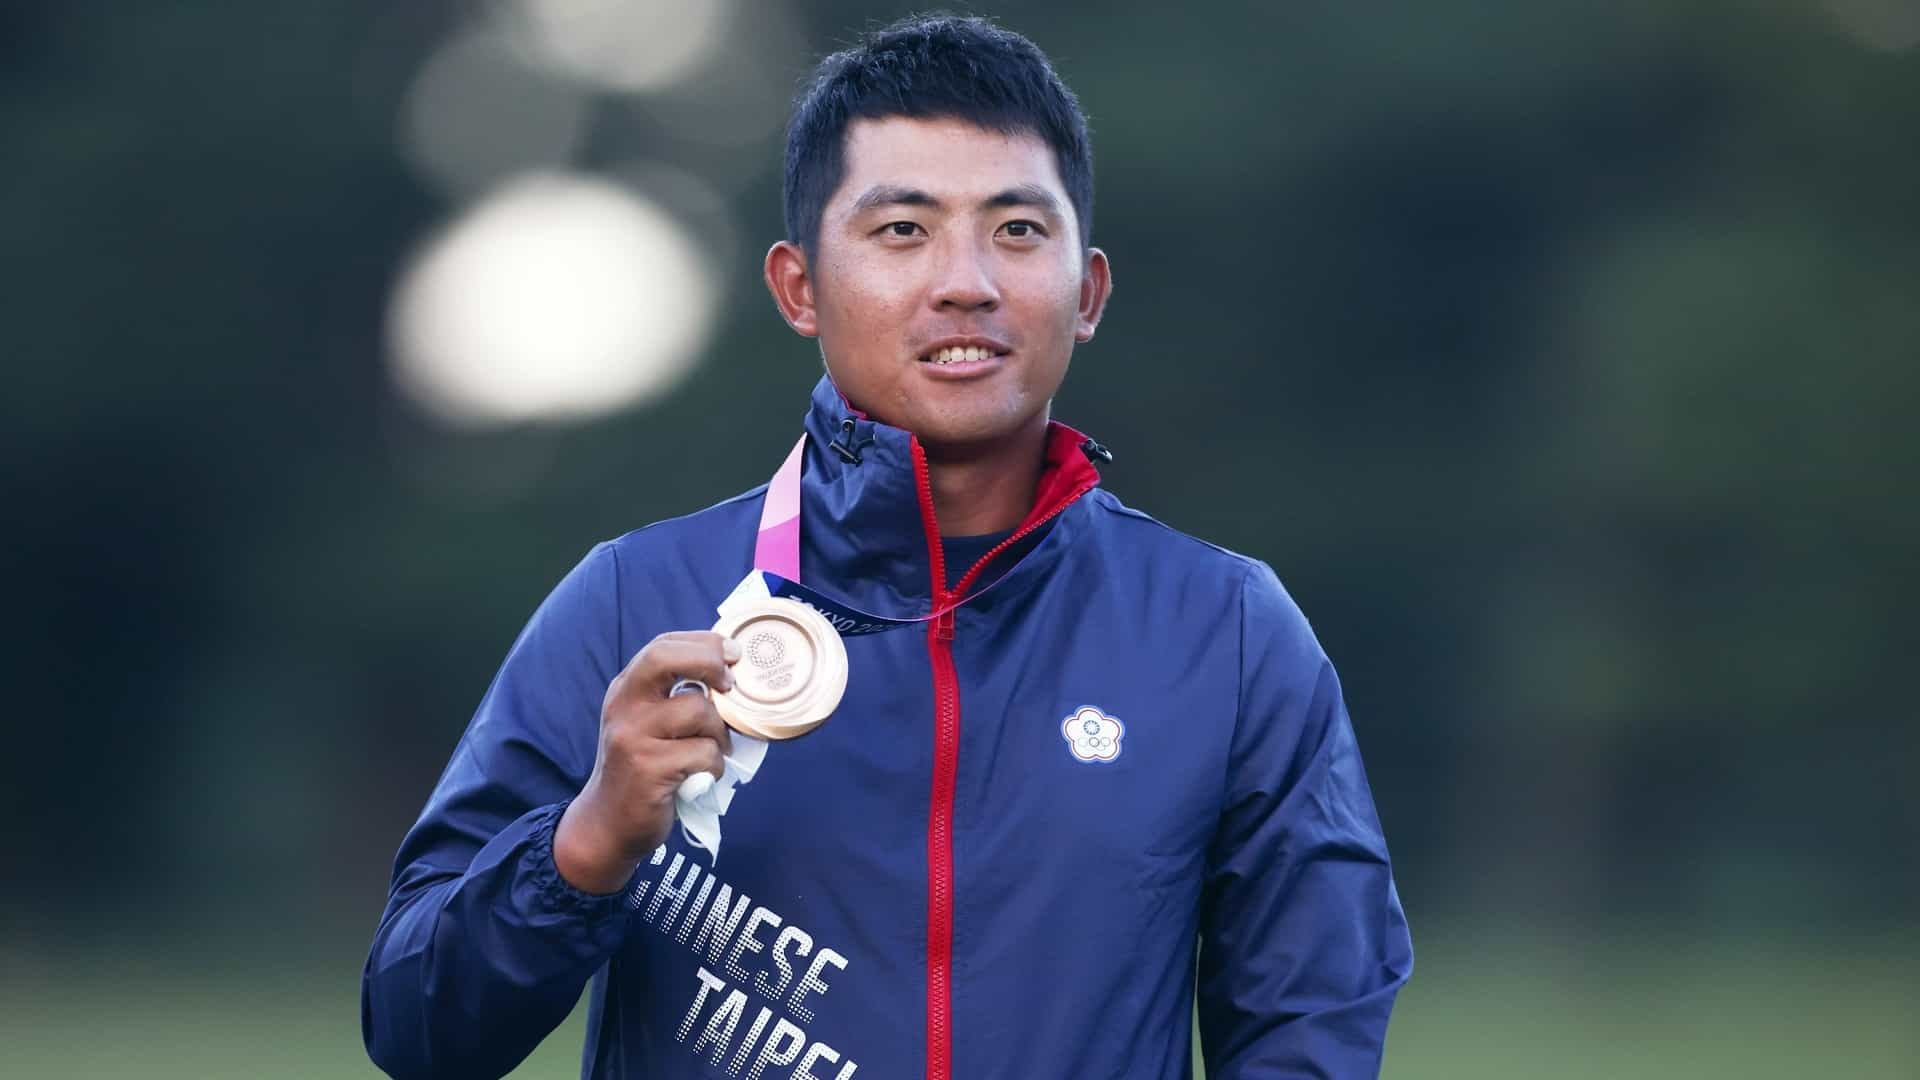 C.T. Pan of Thailand celebrates with his bronze medal in the men's golf tournament at the 2020 Tokyo Olympic Games.